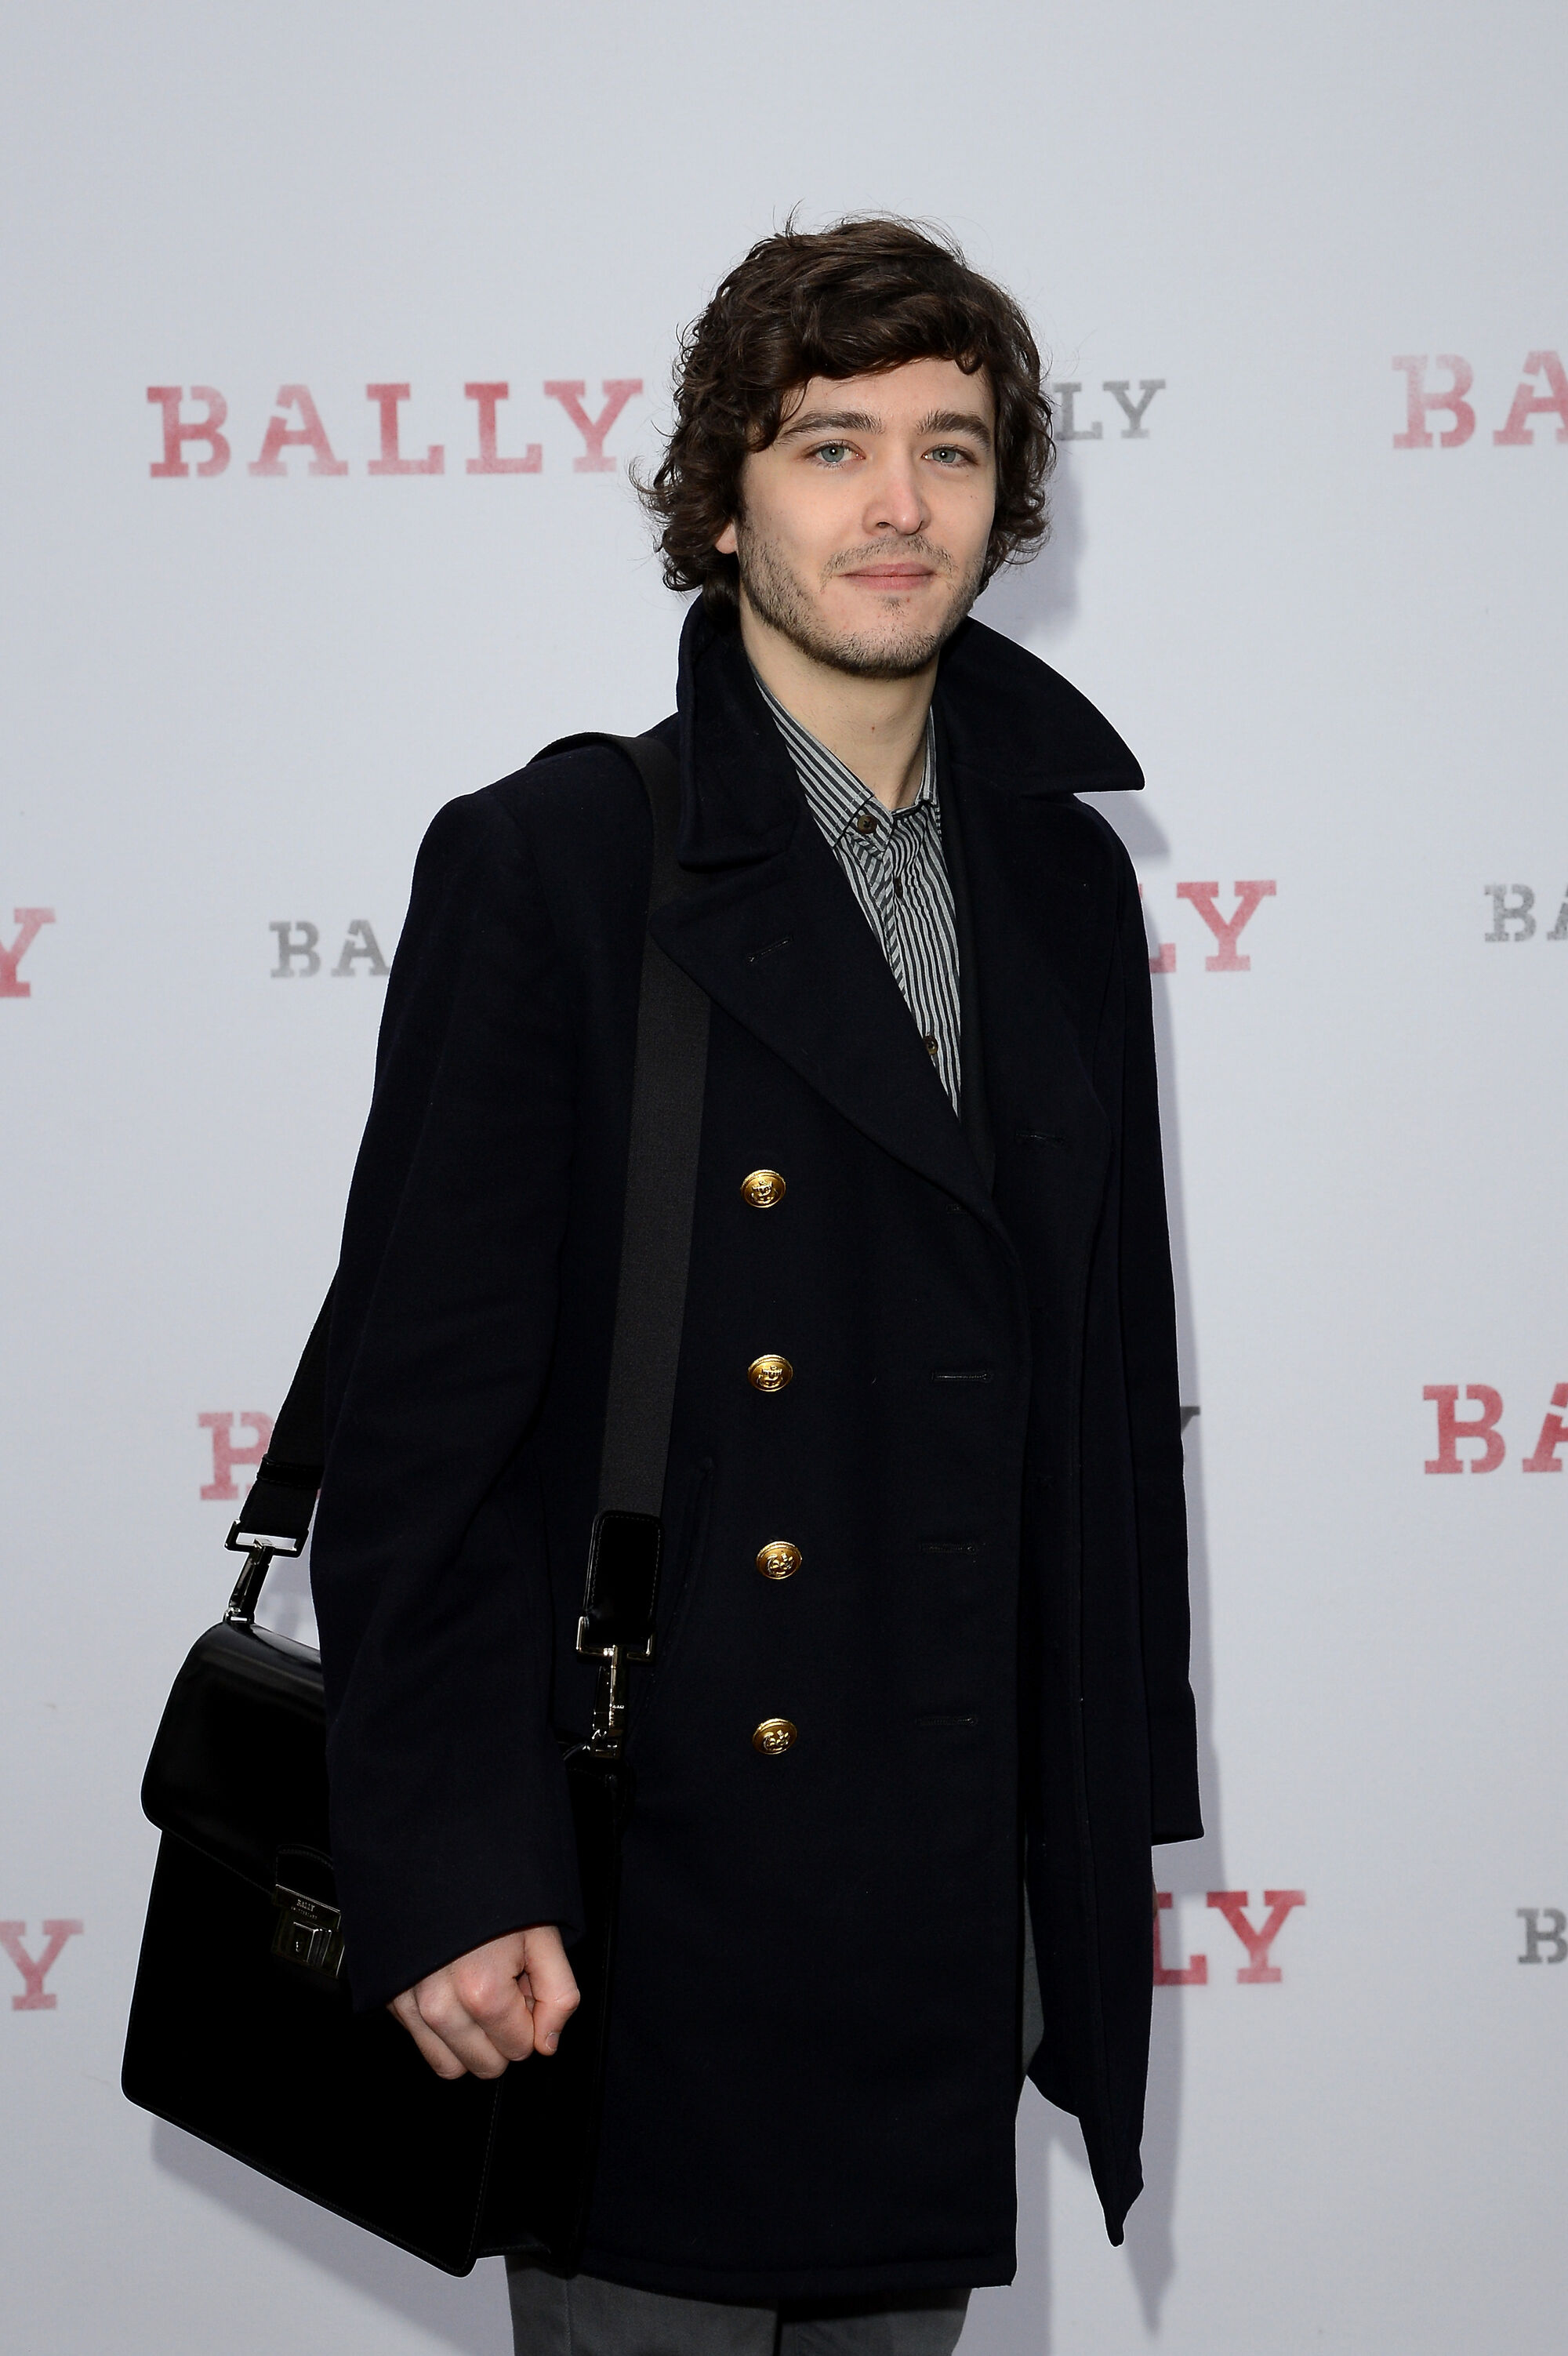 alexander vlahos wikipediaalexander vlahos instagram, alexander vlahos gif hunt, alexander vlahos macbeth, alexander vlahos twitter, alexander vlahos versailles, alexander vlahos tumblr, alexander vlahos gif, alexander vlahos wiki, alexander vlahos greek, alexander vlahos imdb, alexander vlahos wikipedia, alexander vlahos interview